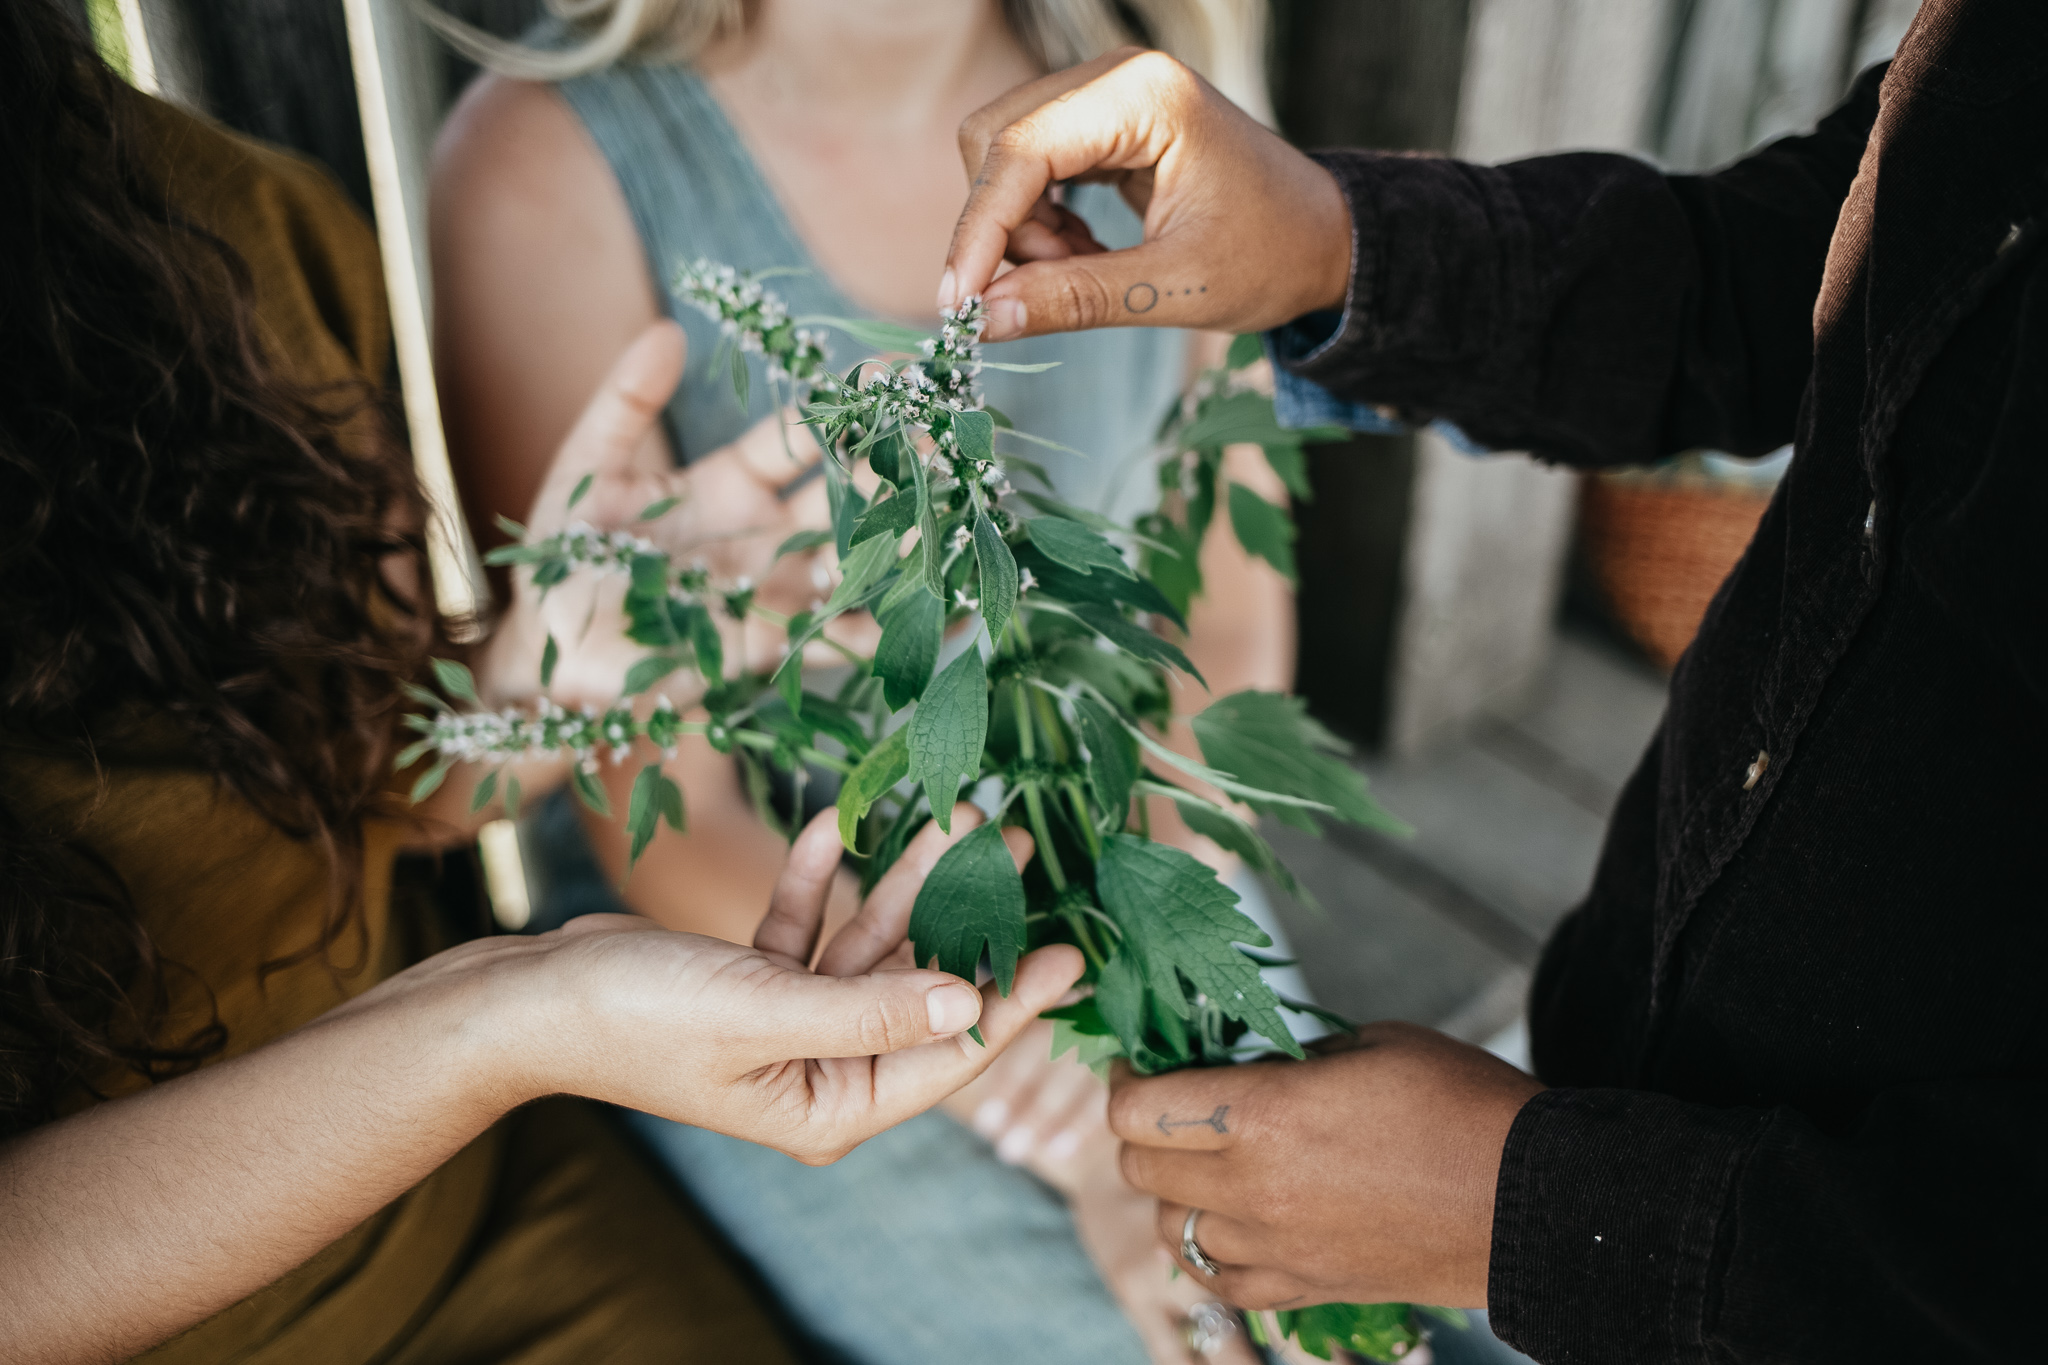 The Professional Herbalist Path Package is an online, self-paced herbalism course designed to prepare students for a career as an herbalist